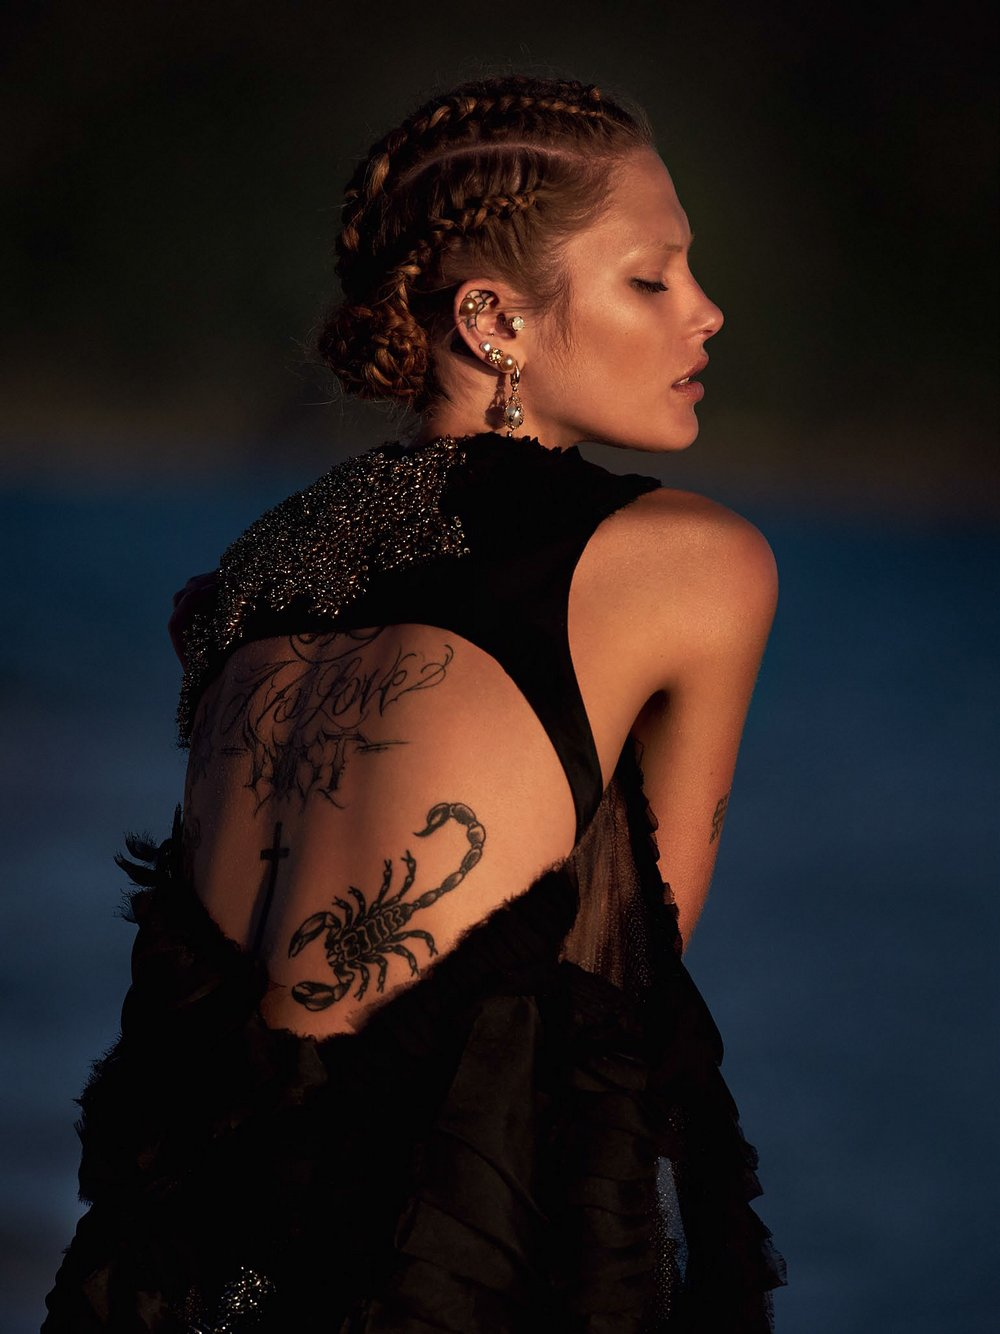 Catherine-McNeil-by-Gilles-Bensimon-for-Vogue-Australia-October-2014-6.jpg